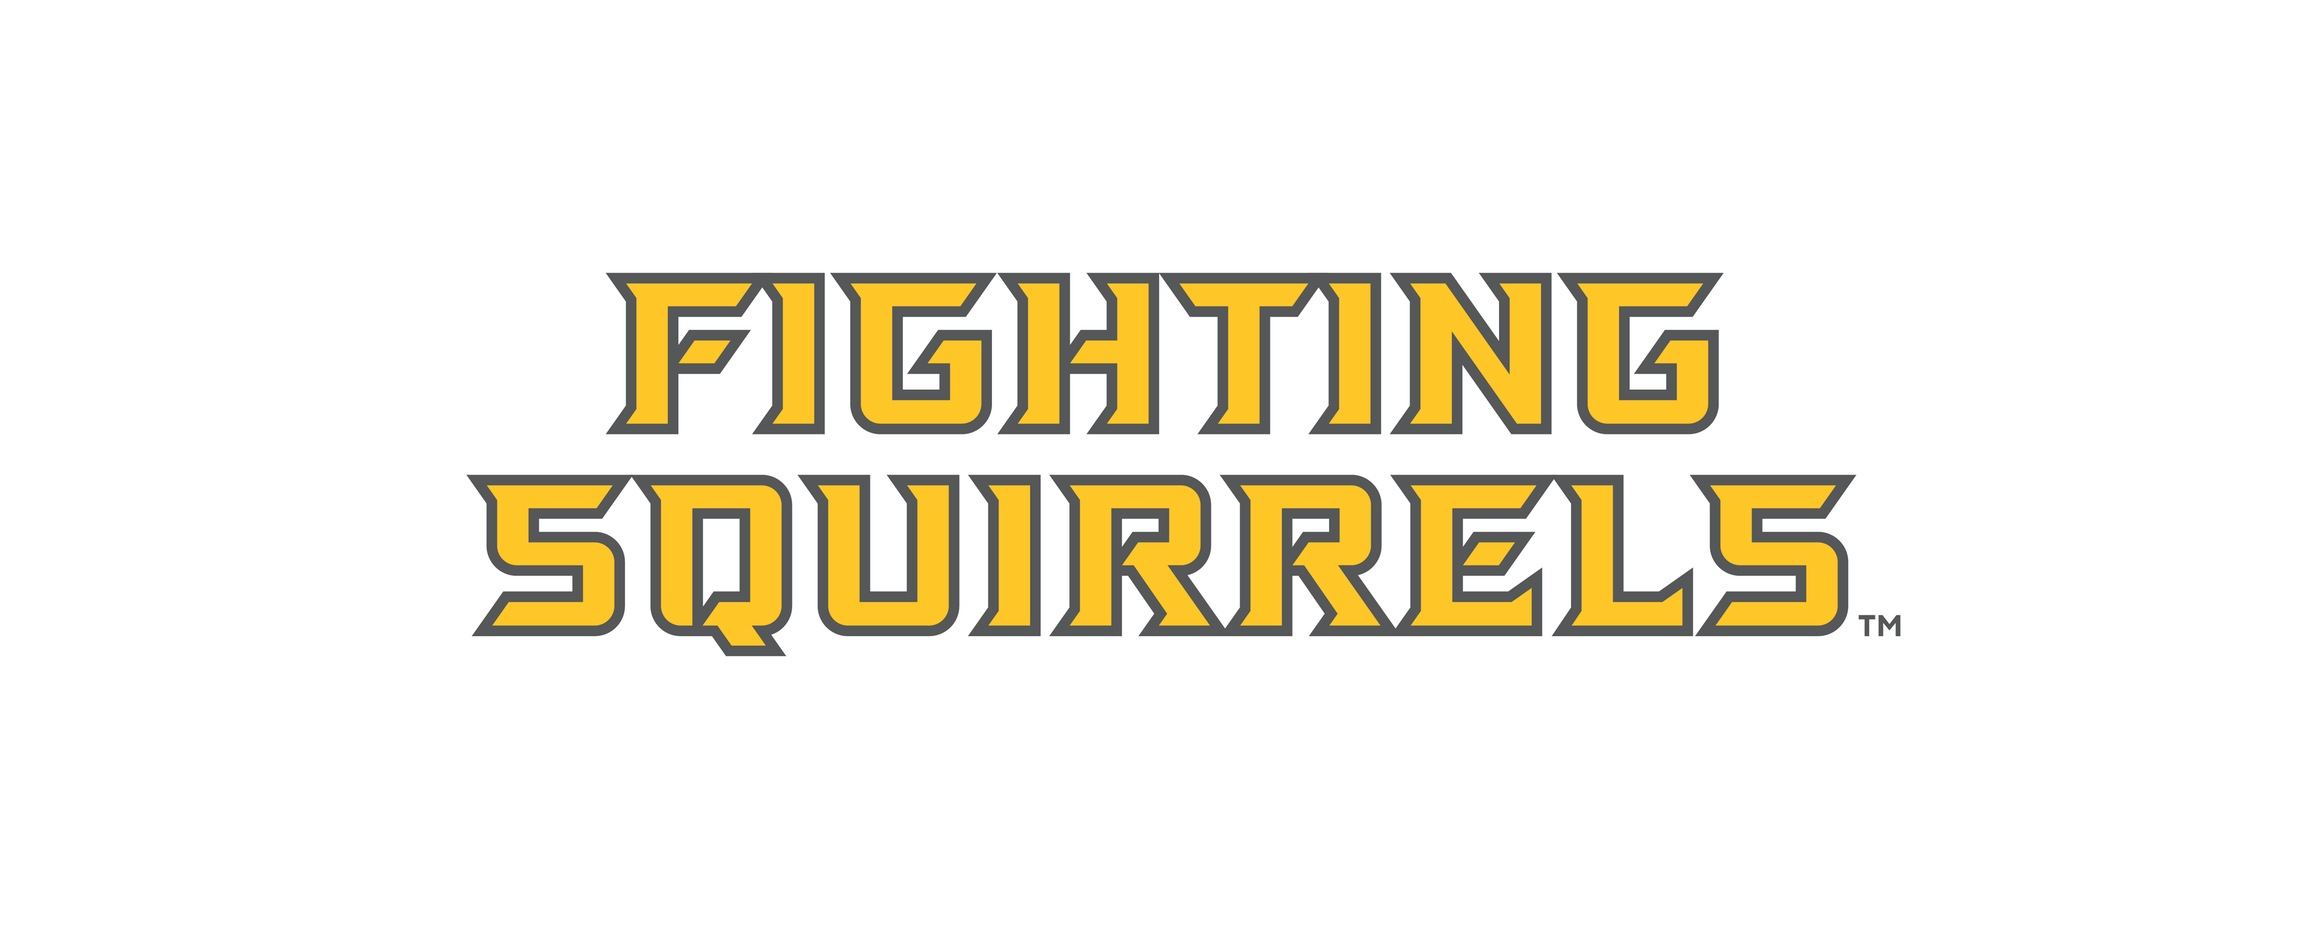 Fighting Squirrels wordmark